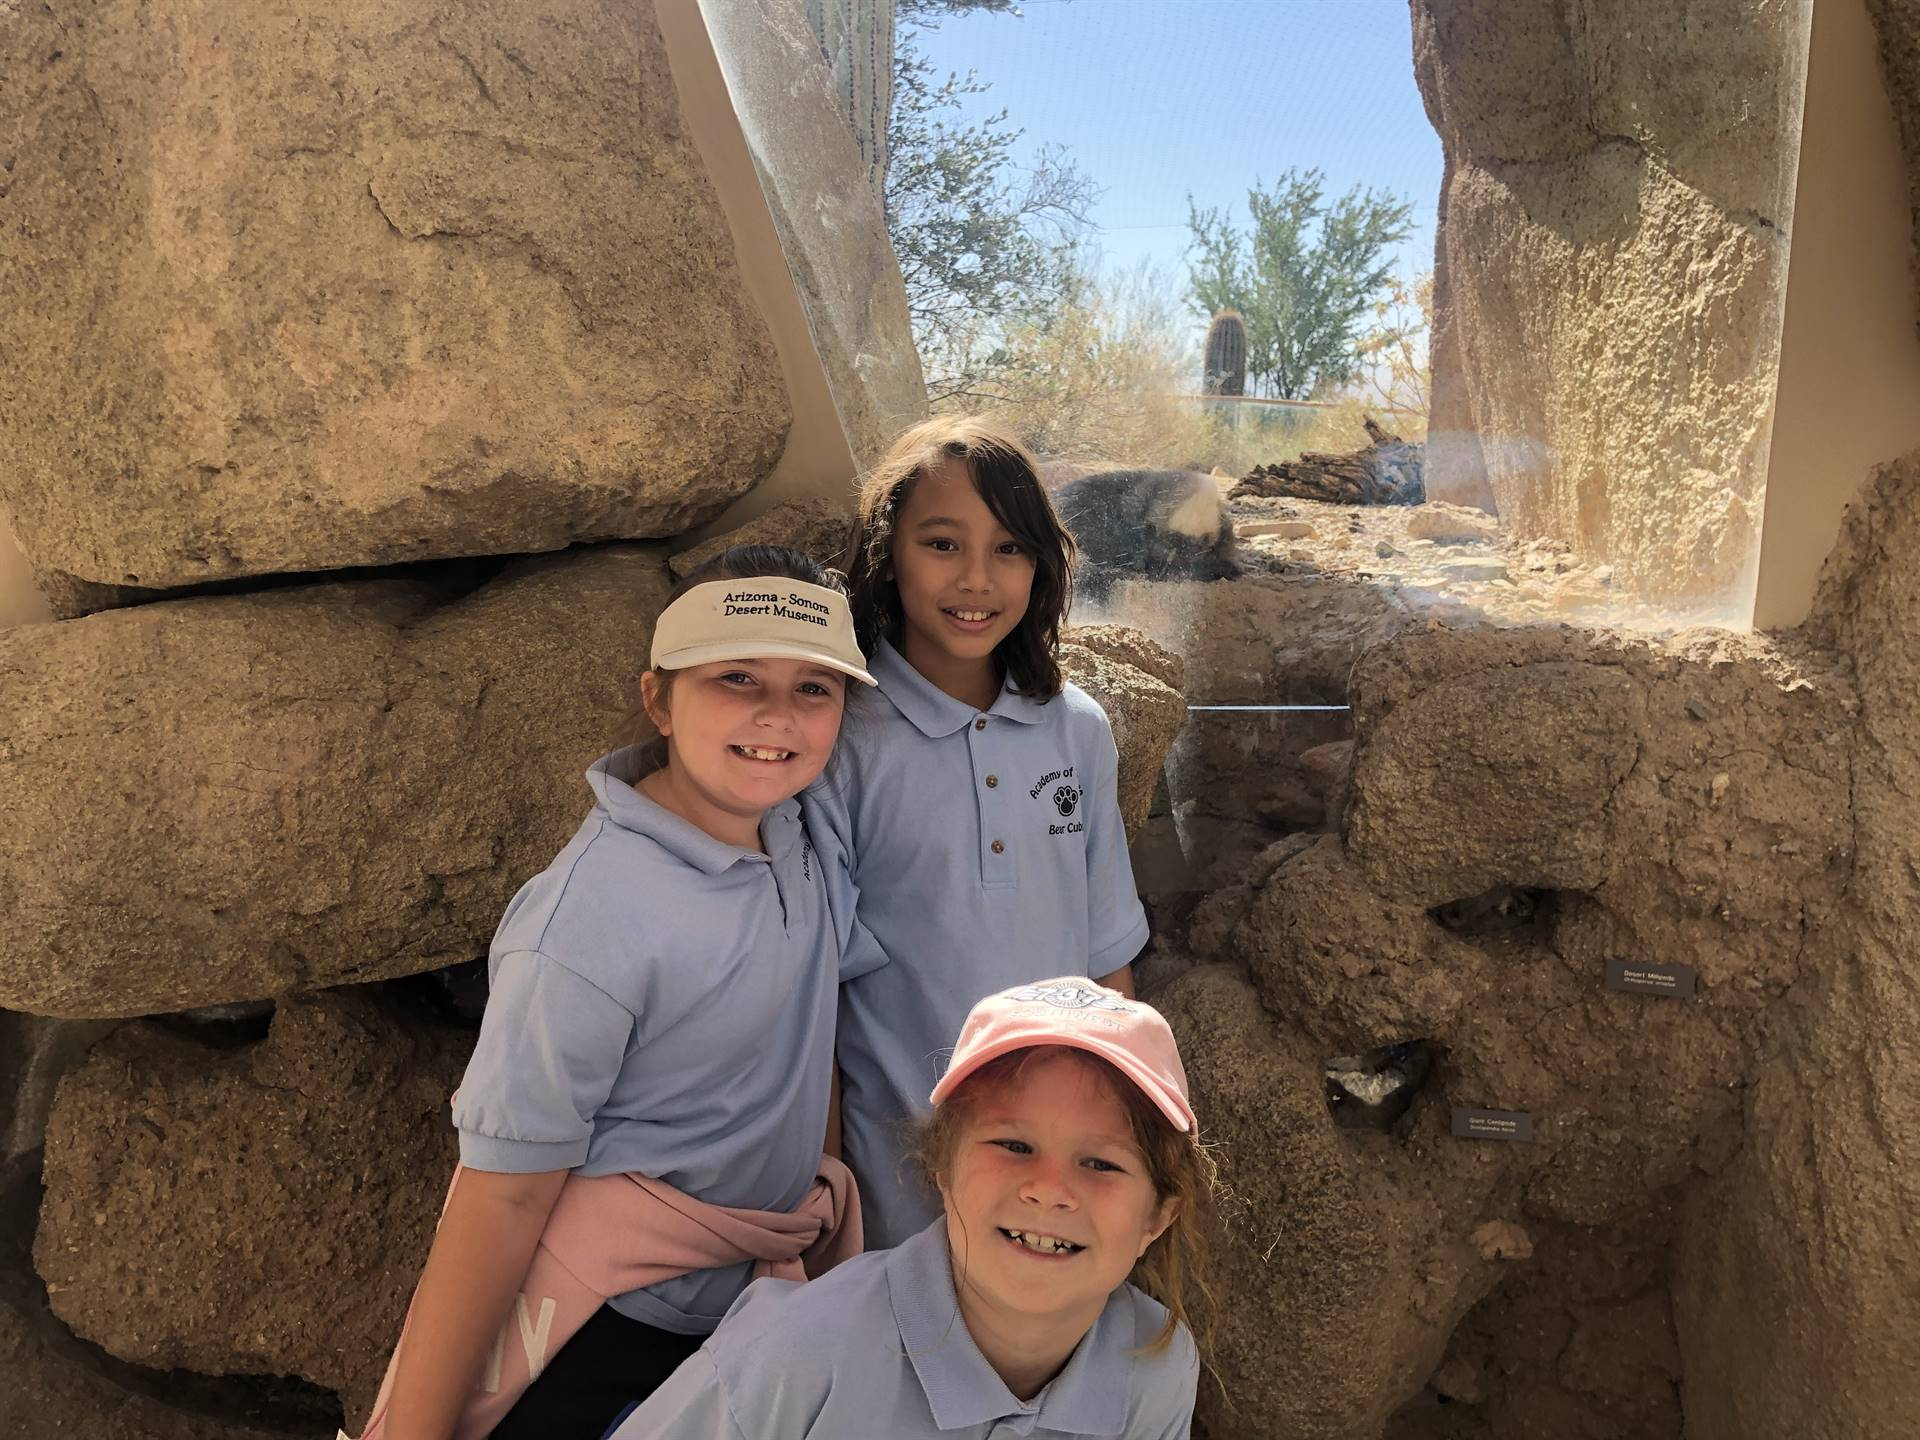 3 students near the prairie dog exhibit